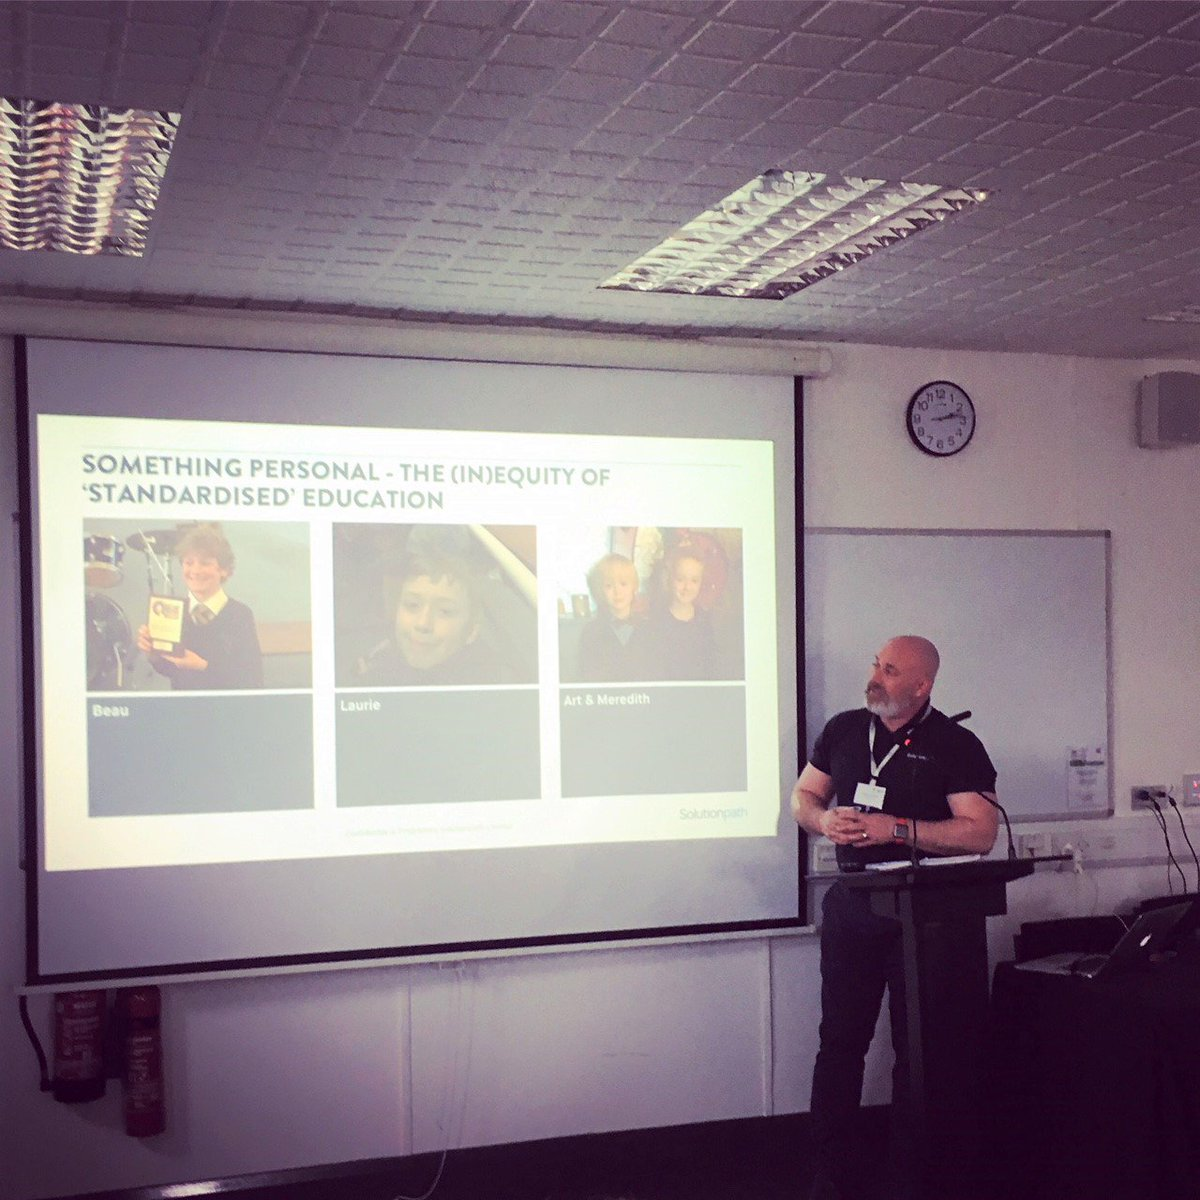 Our MD @GazzaToGo speaking at @SalfordUni on how Digital Engagement Learning Analytics can support the personalised learning journey of students in #HE, a key takeaway from the conference. Success is unlikely to be achieved with a one size fits all approach #studentexperienceconf<br>http://pic.twitter.com/nQHfvMA8VC